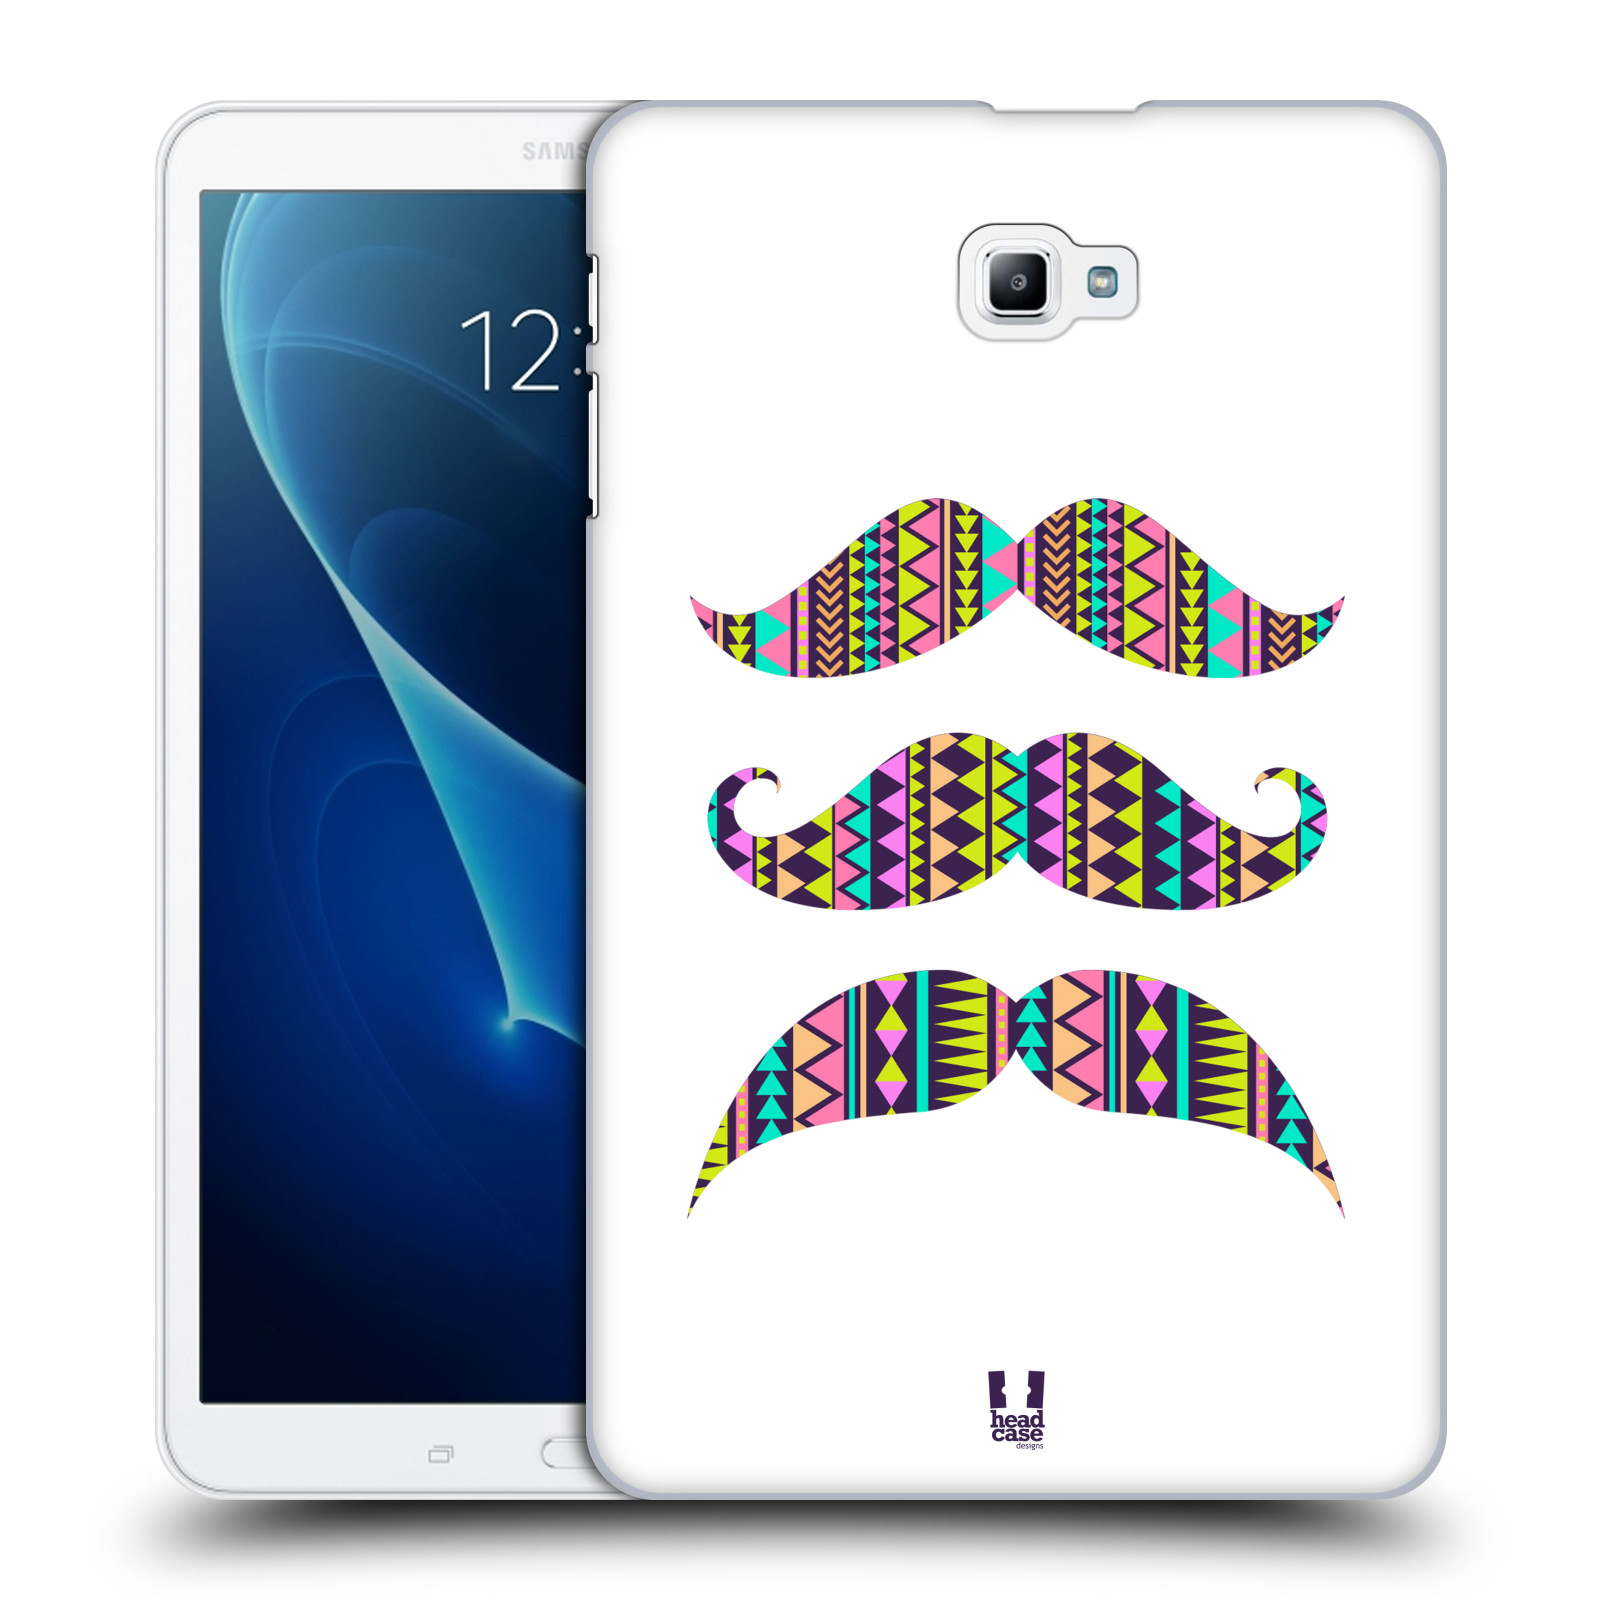 Head Case Designs Aztec White Moustaches Hard Back Cover For Samsung T111 Galaxy Tab 3 Lite Picture 8 Of